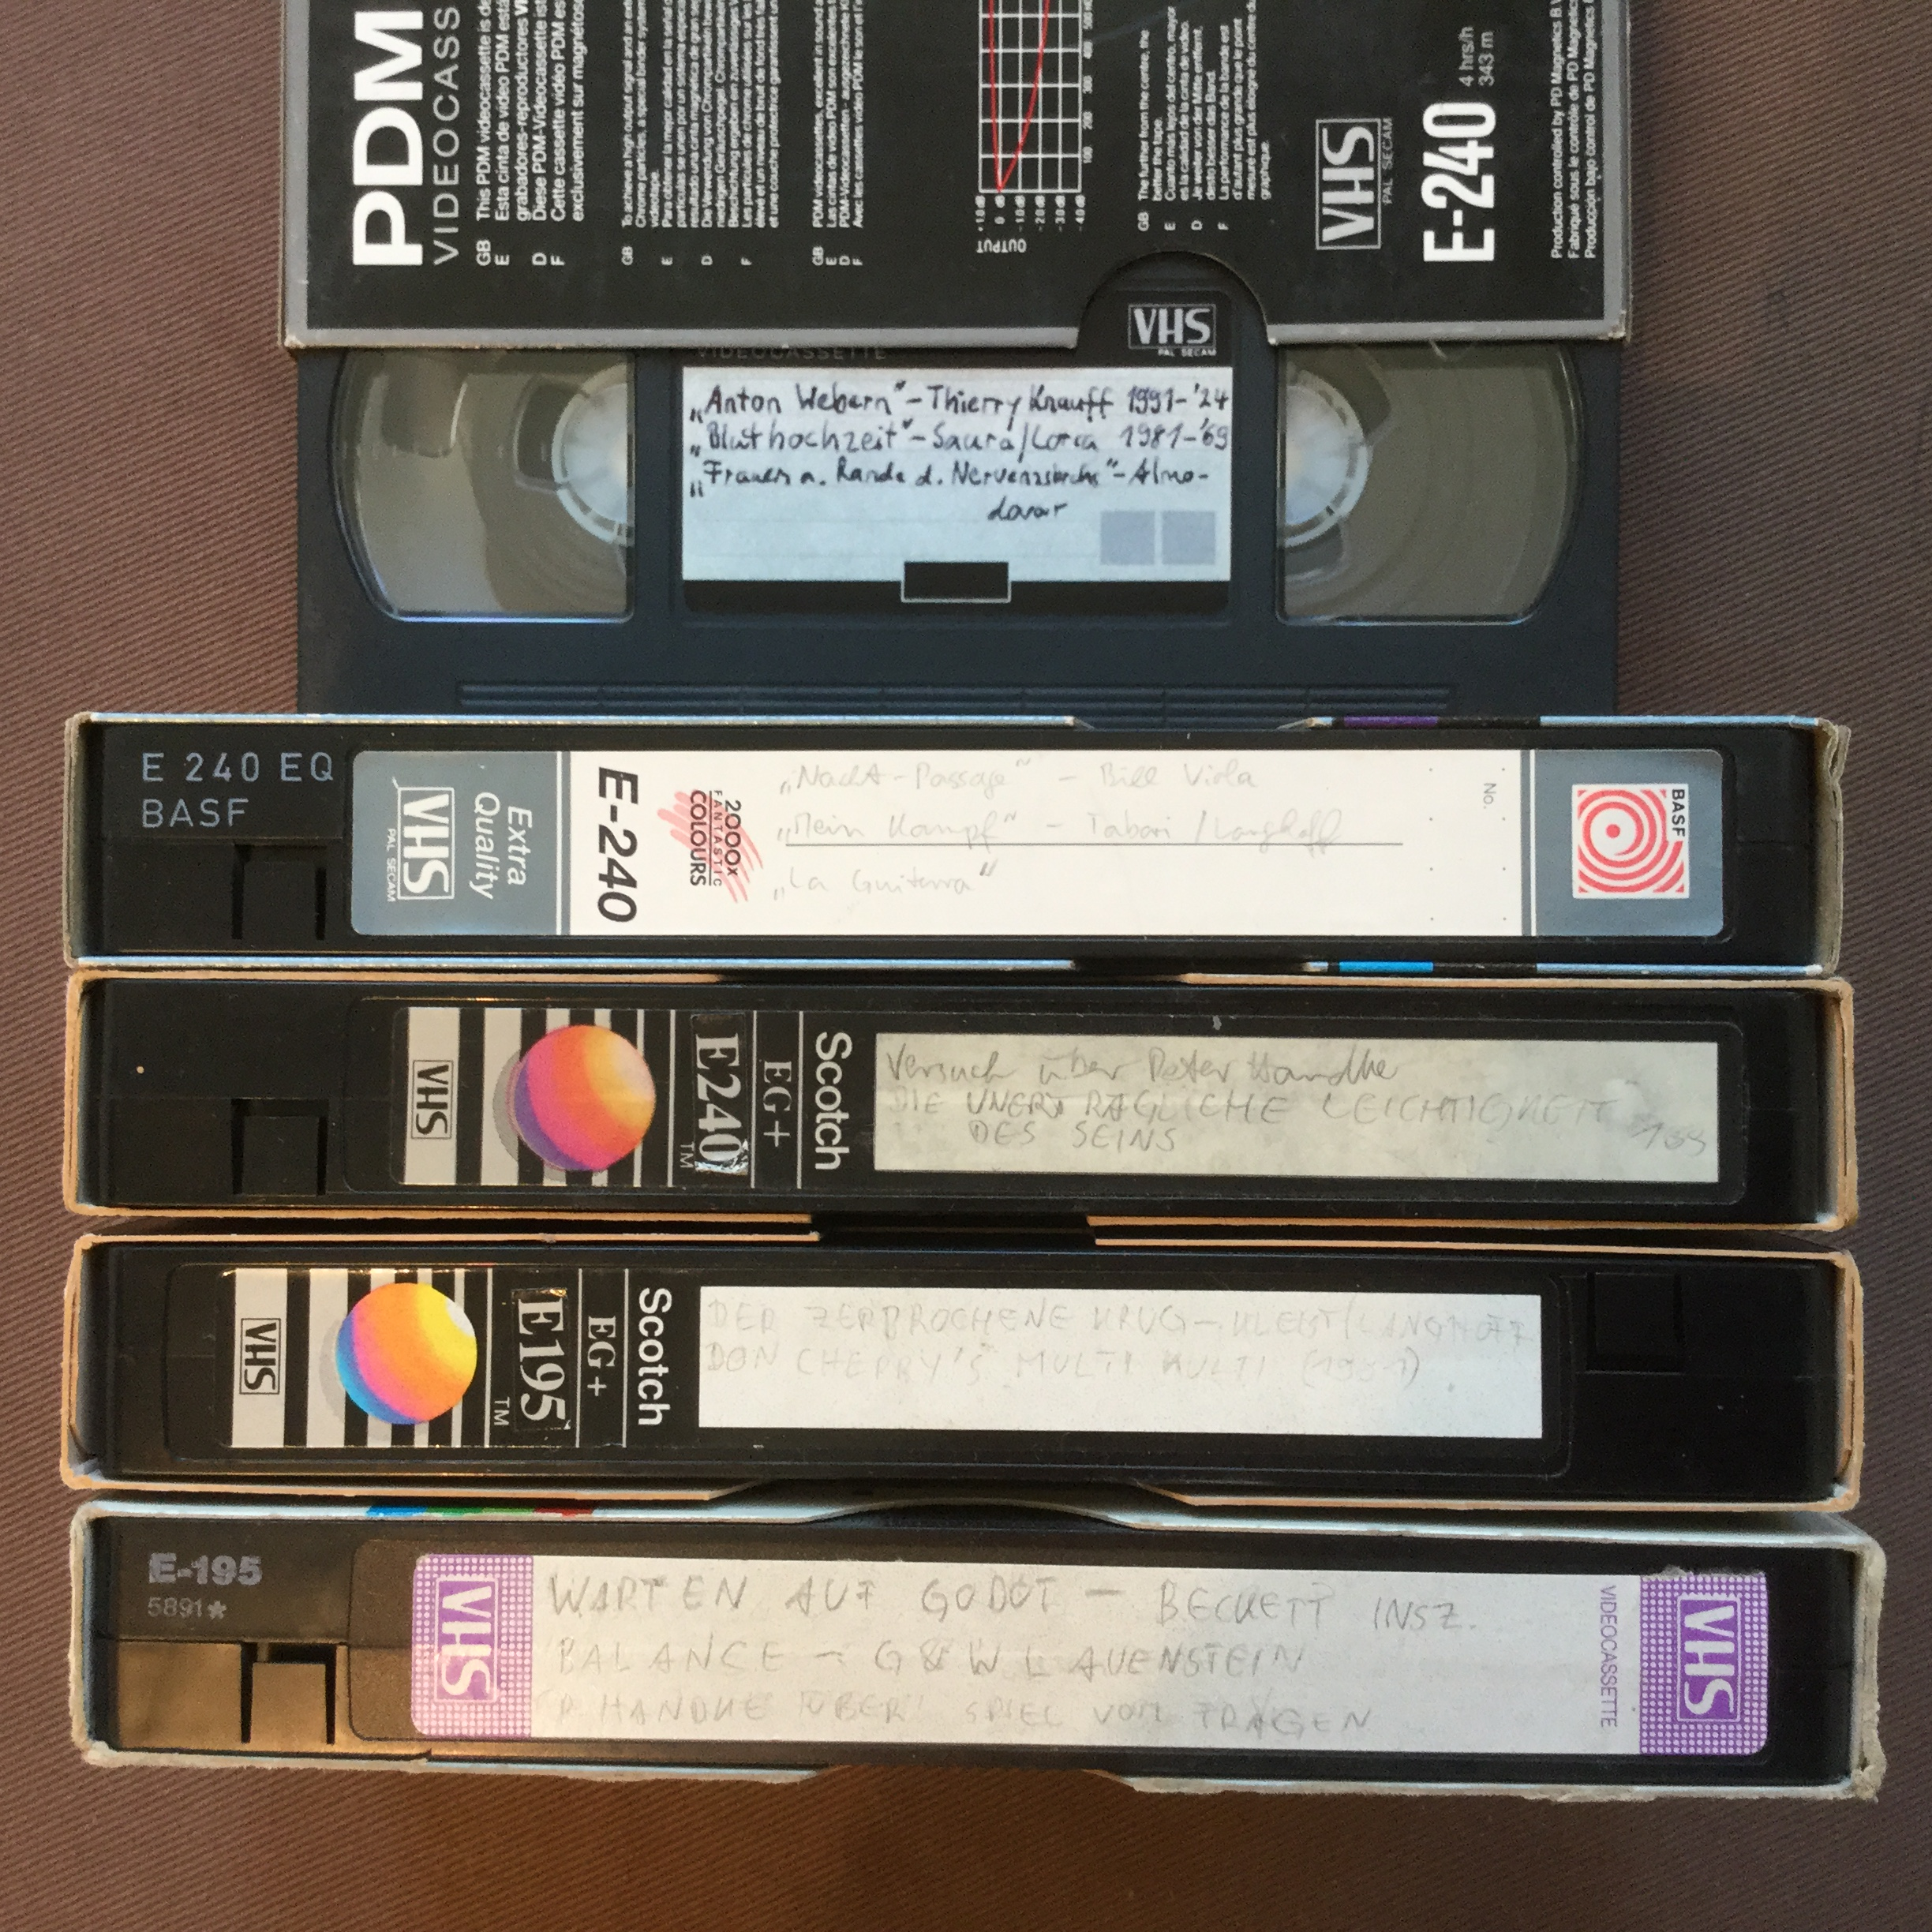 My Videotapes 2